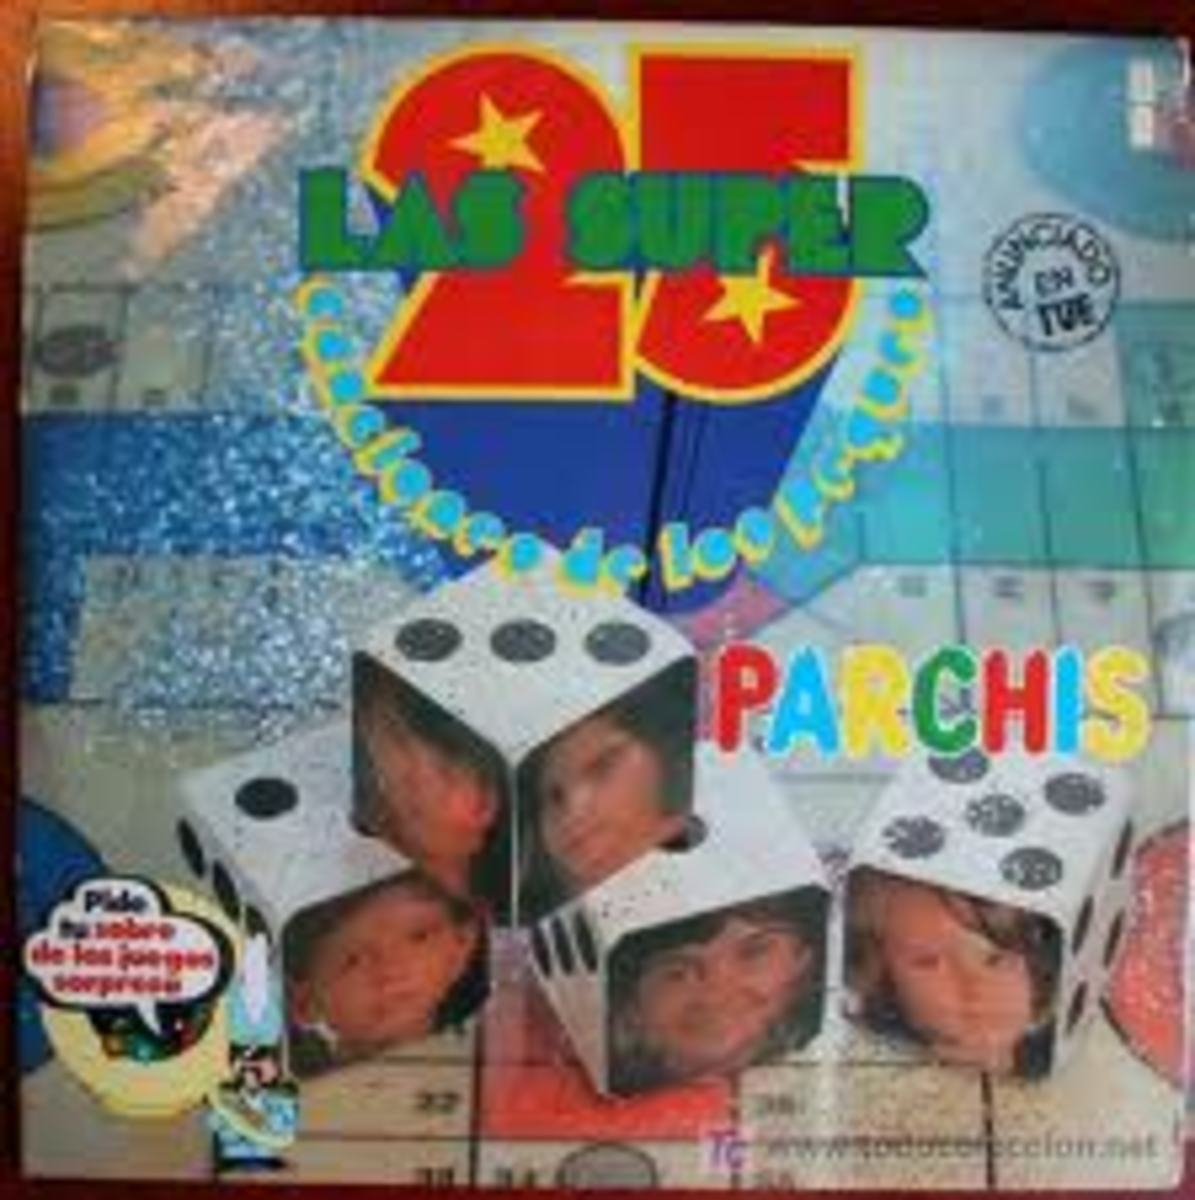 Parchis's most famous childrens album. This is their first debut album that was released in 1979. I love this album because it contains really fun, meaningful, and imaginative songs that any children can listen to.